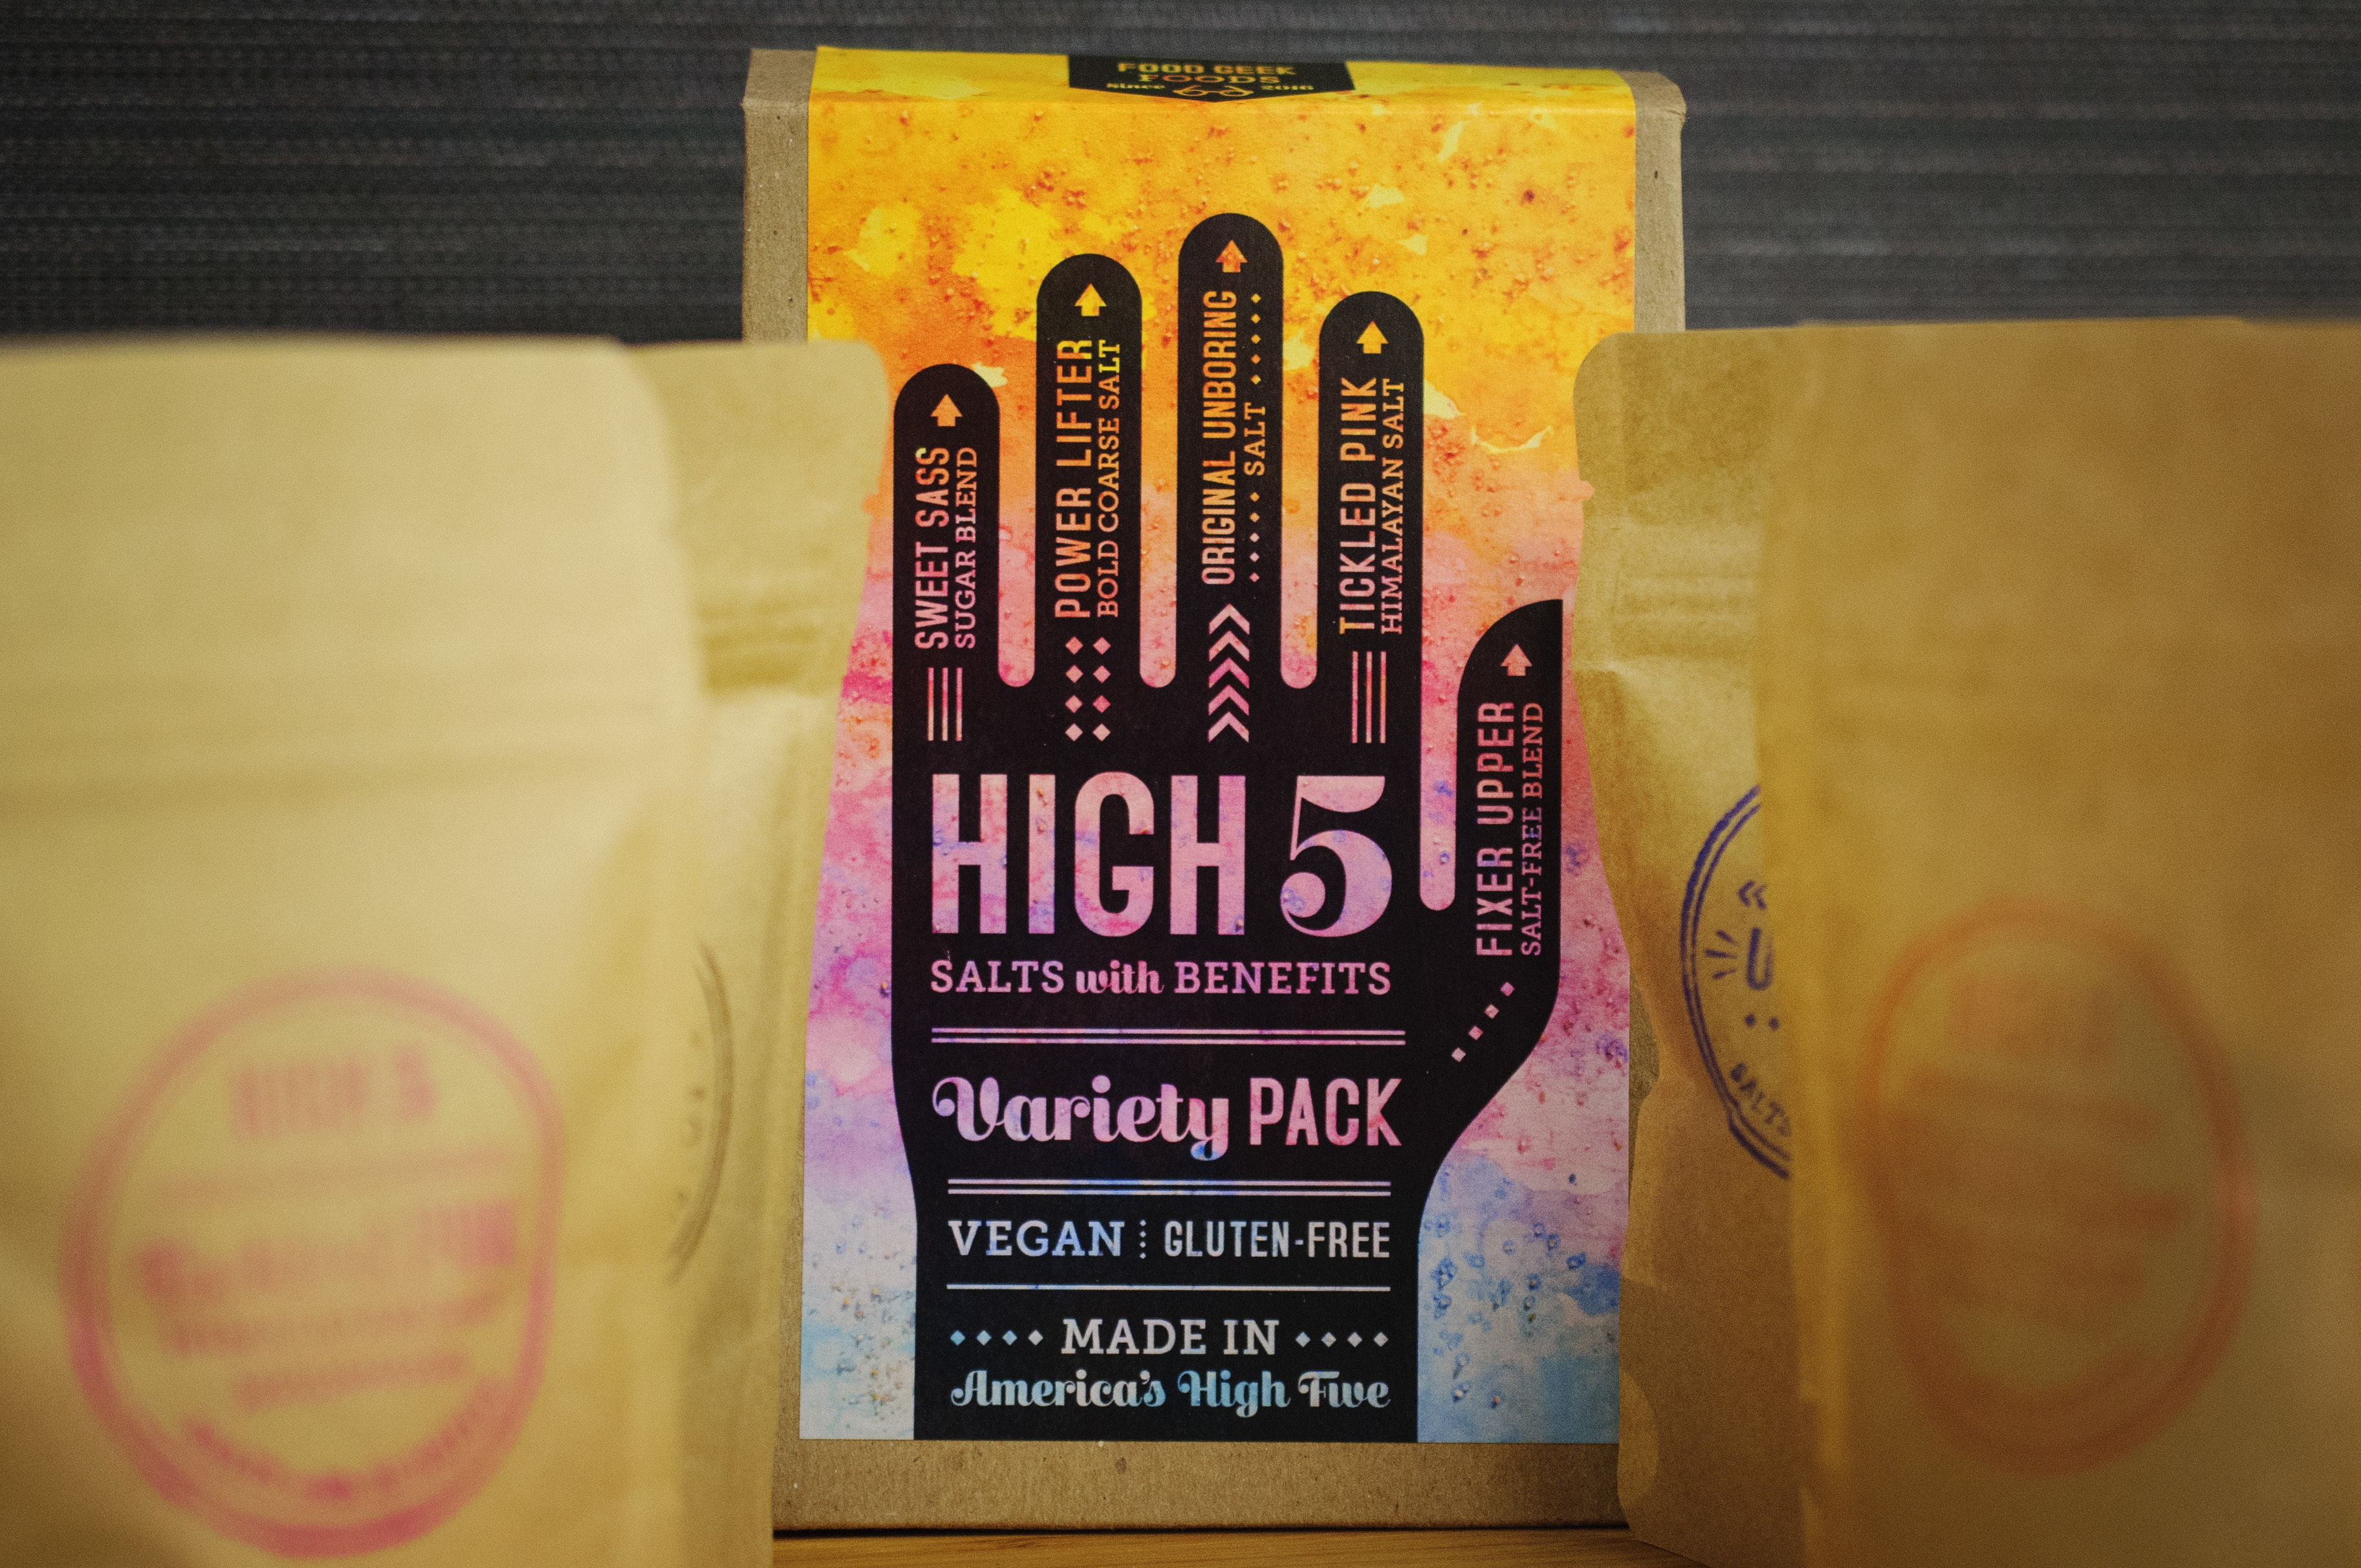 Variety Pack | High 5 Salts with Benefits var5